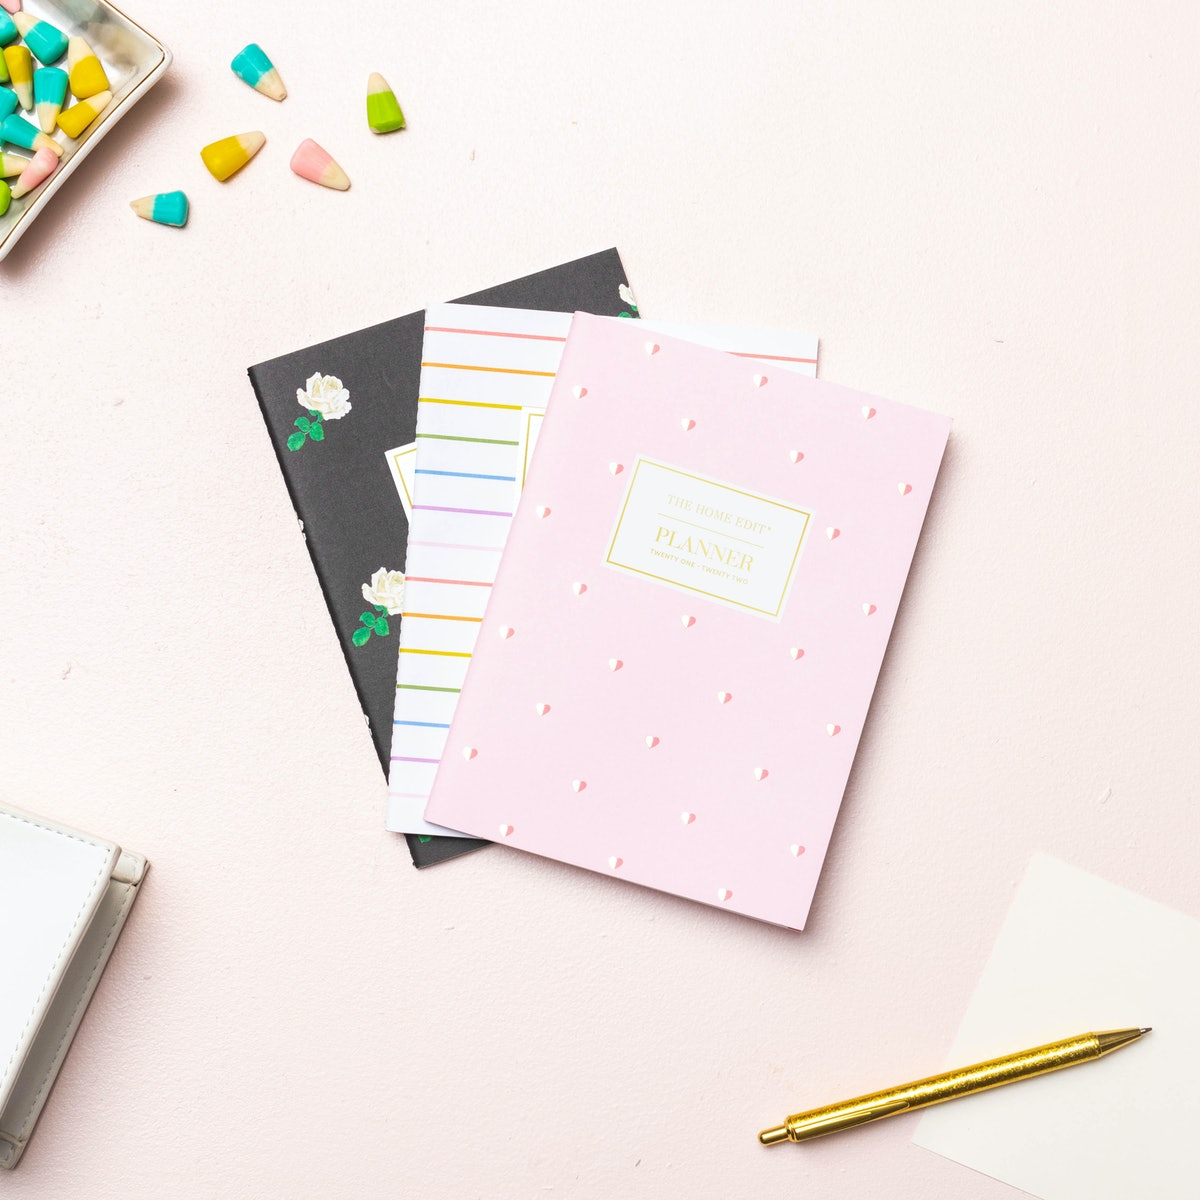 Three notebooks from The Home Edit for Day Designer collection lay on the table.